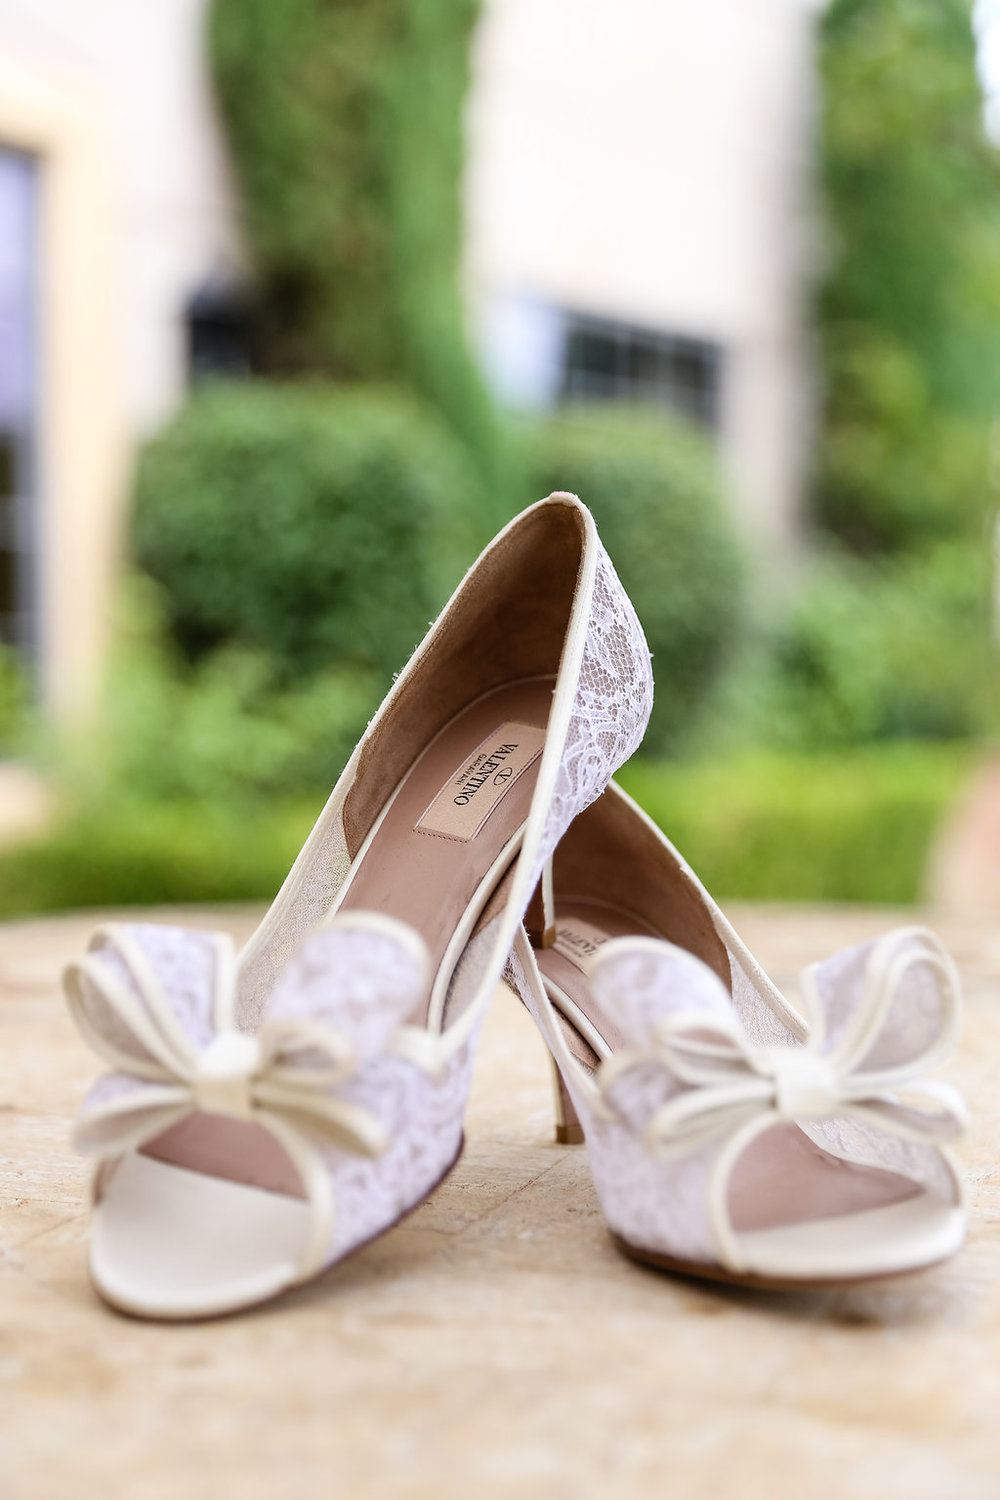 Gorgeous White Wedding Shoes - Gorgeous Seal Beach Wedding Venue - Old Country Club Wedding